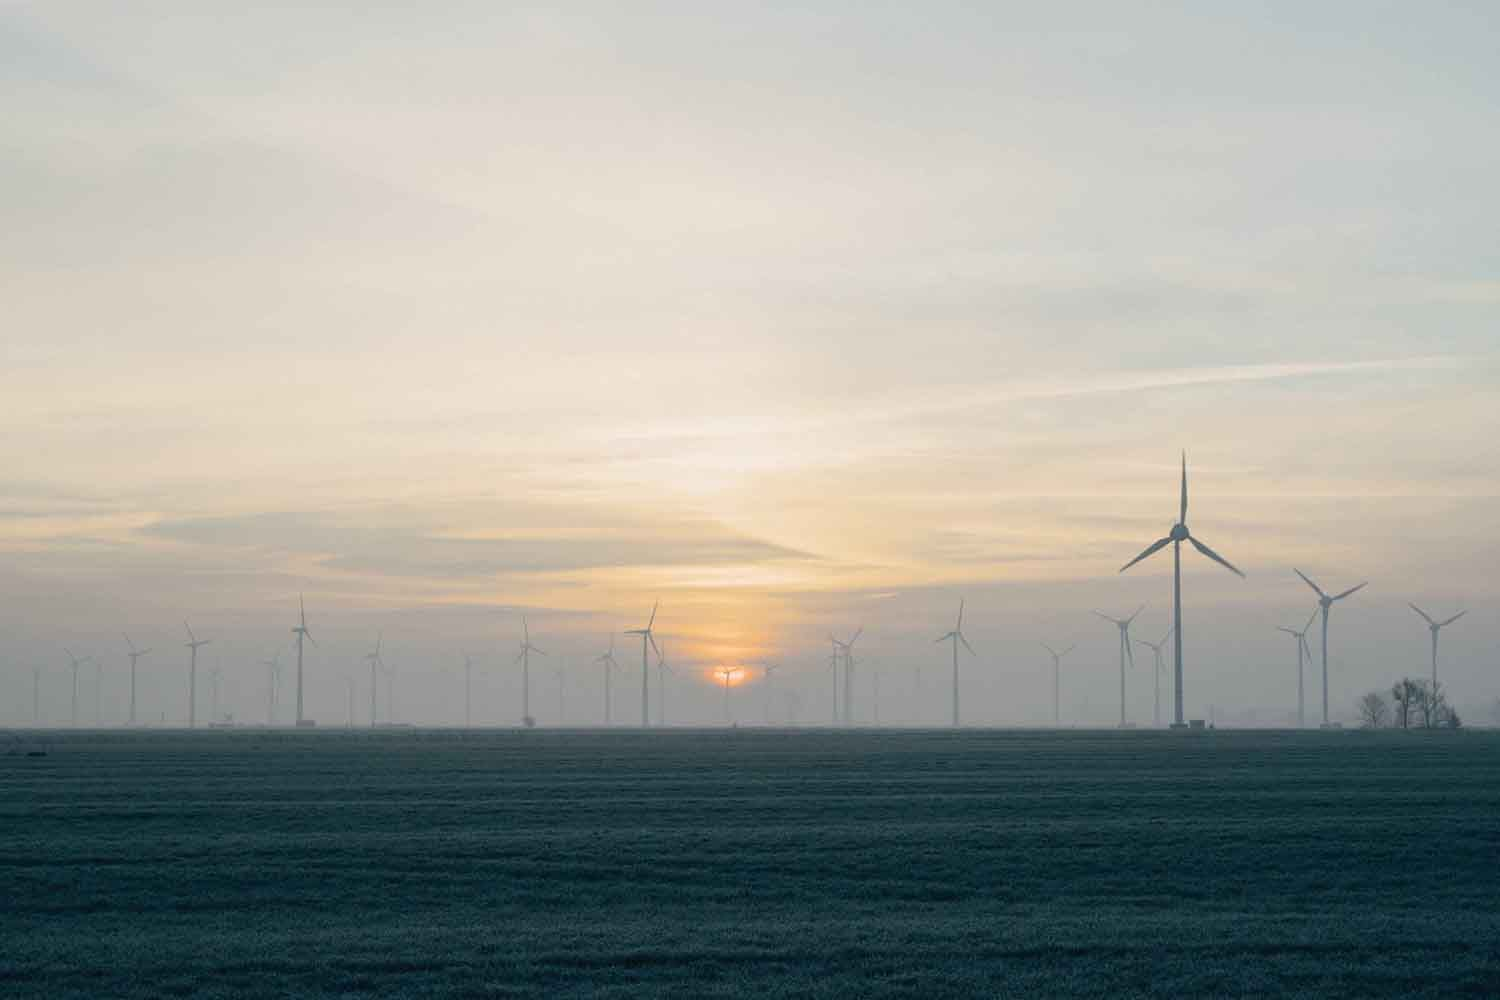 windmills sunset 2.jpg